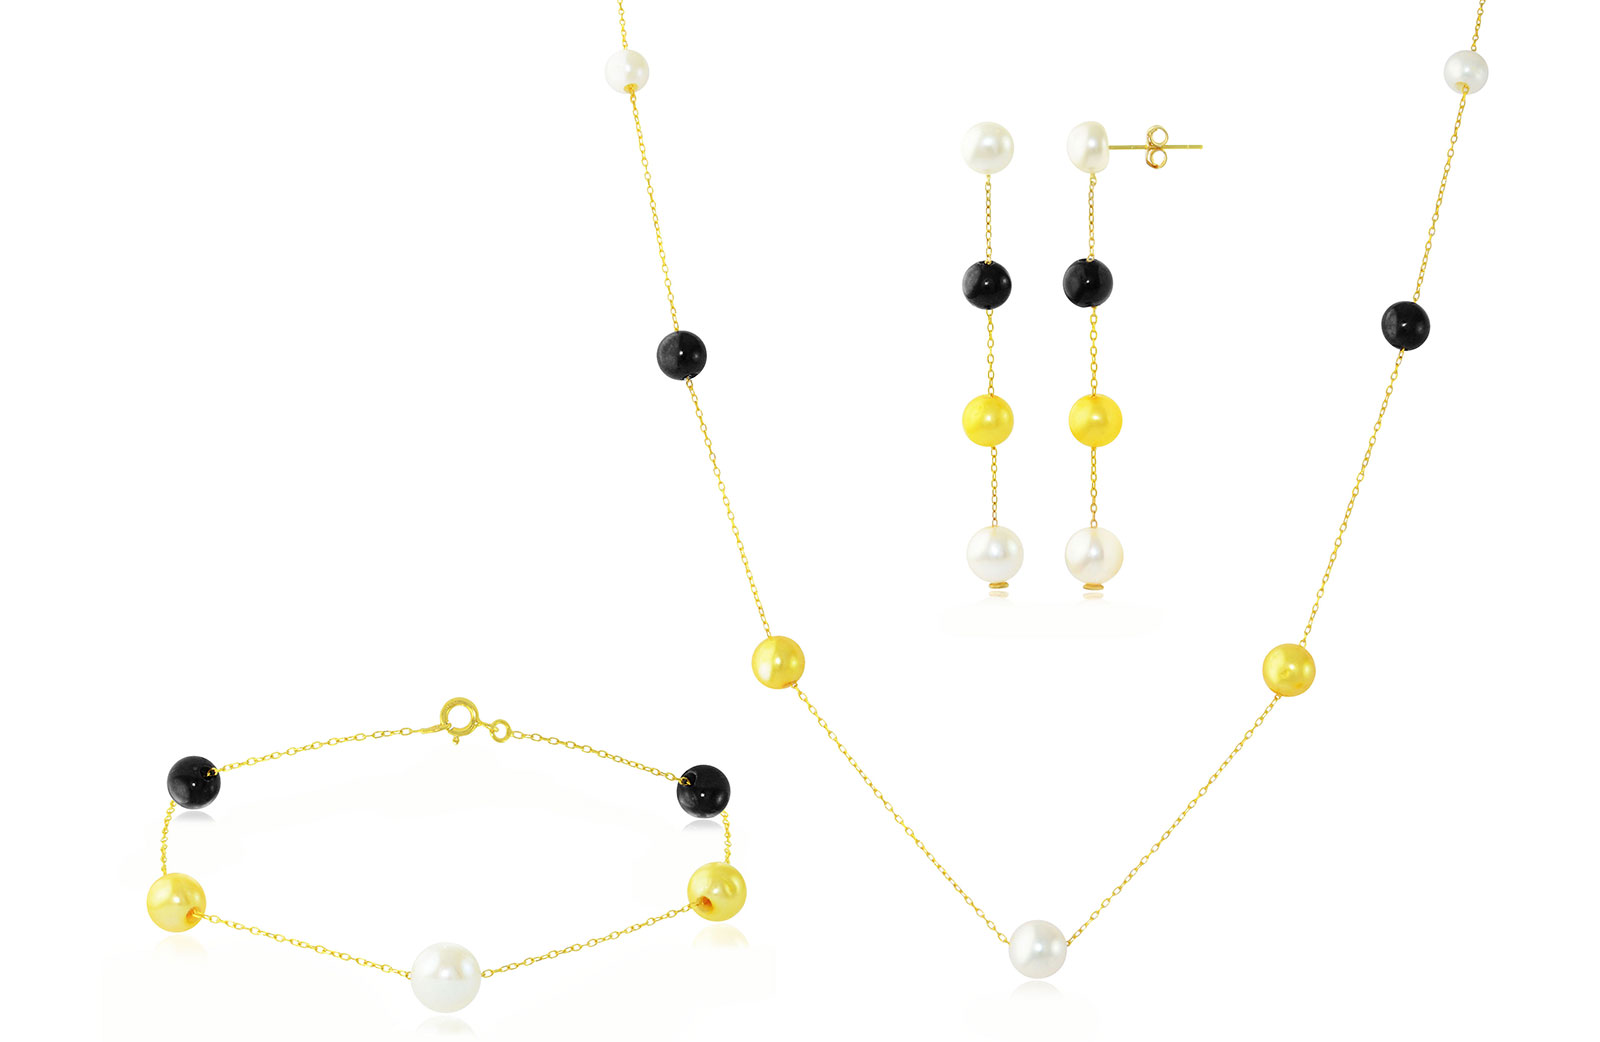 Vp Jewels 18K Solid Gold 5-7MM Gradual  Built-in  Golden-Yelow, White and Black  Pearl Necklace,  earrings,  Bracelet Set